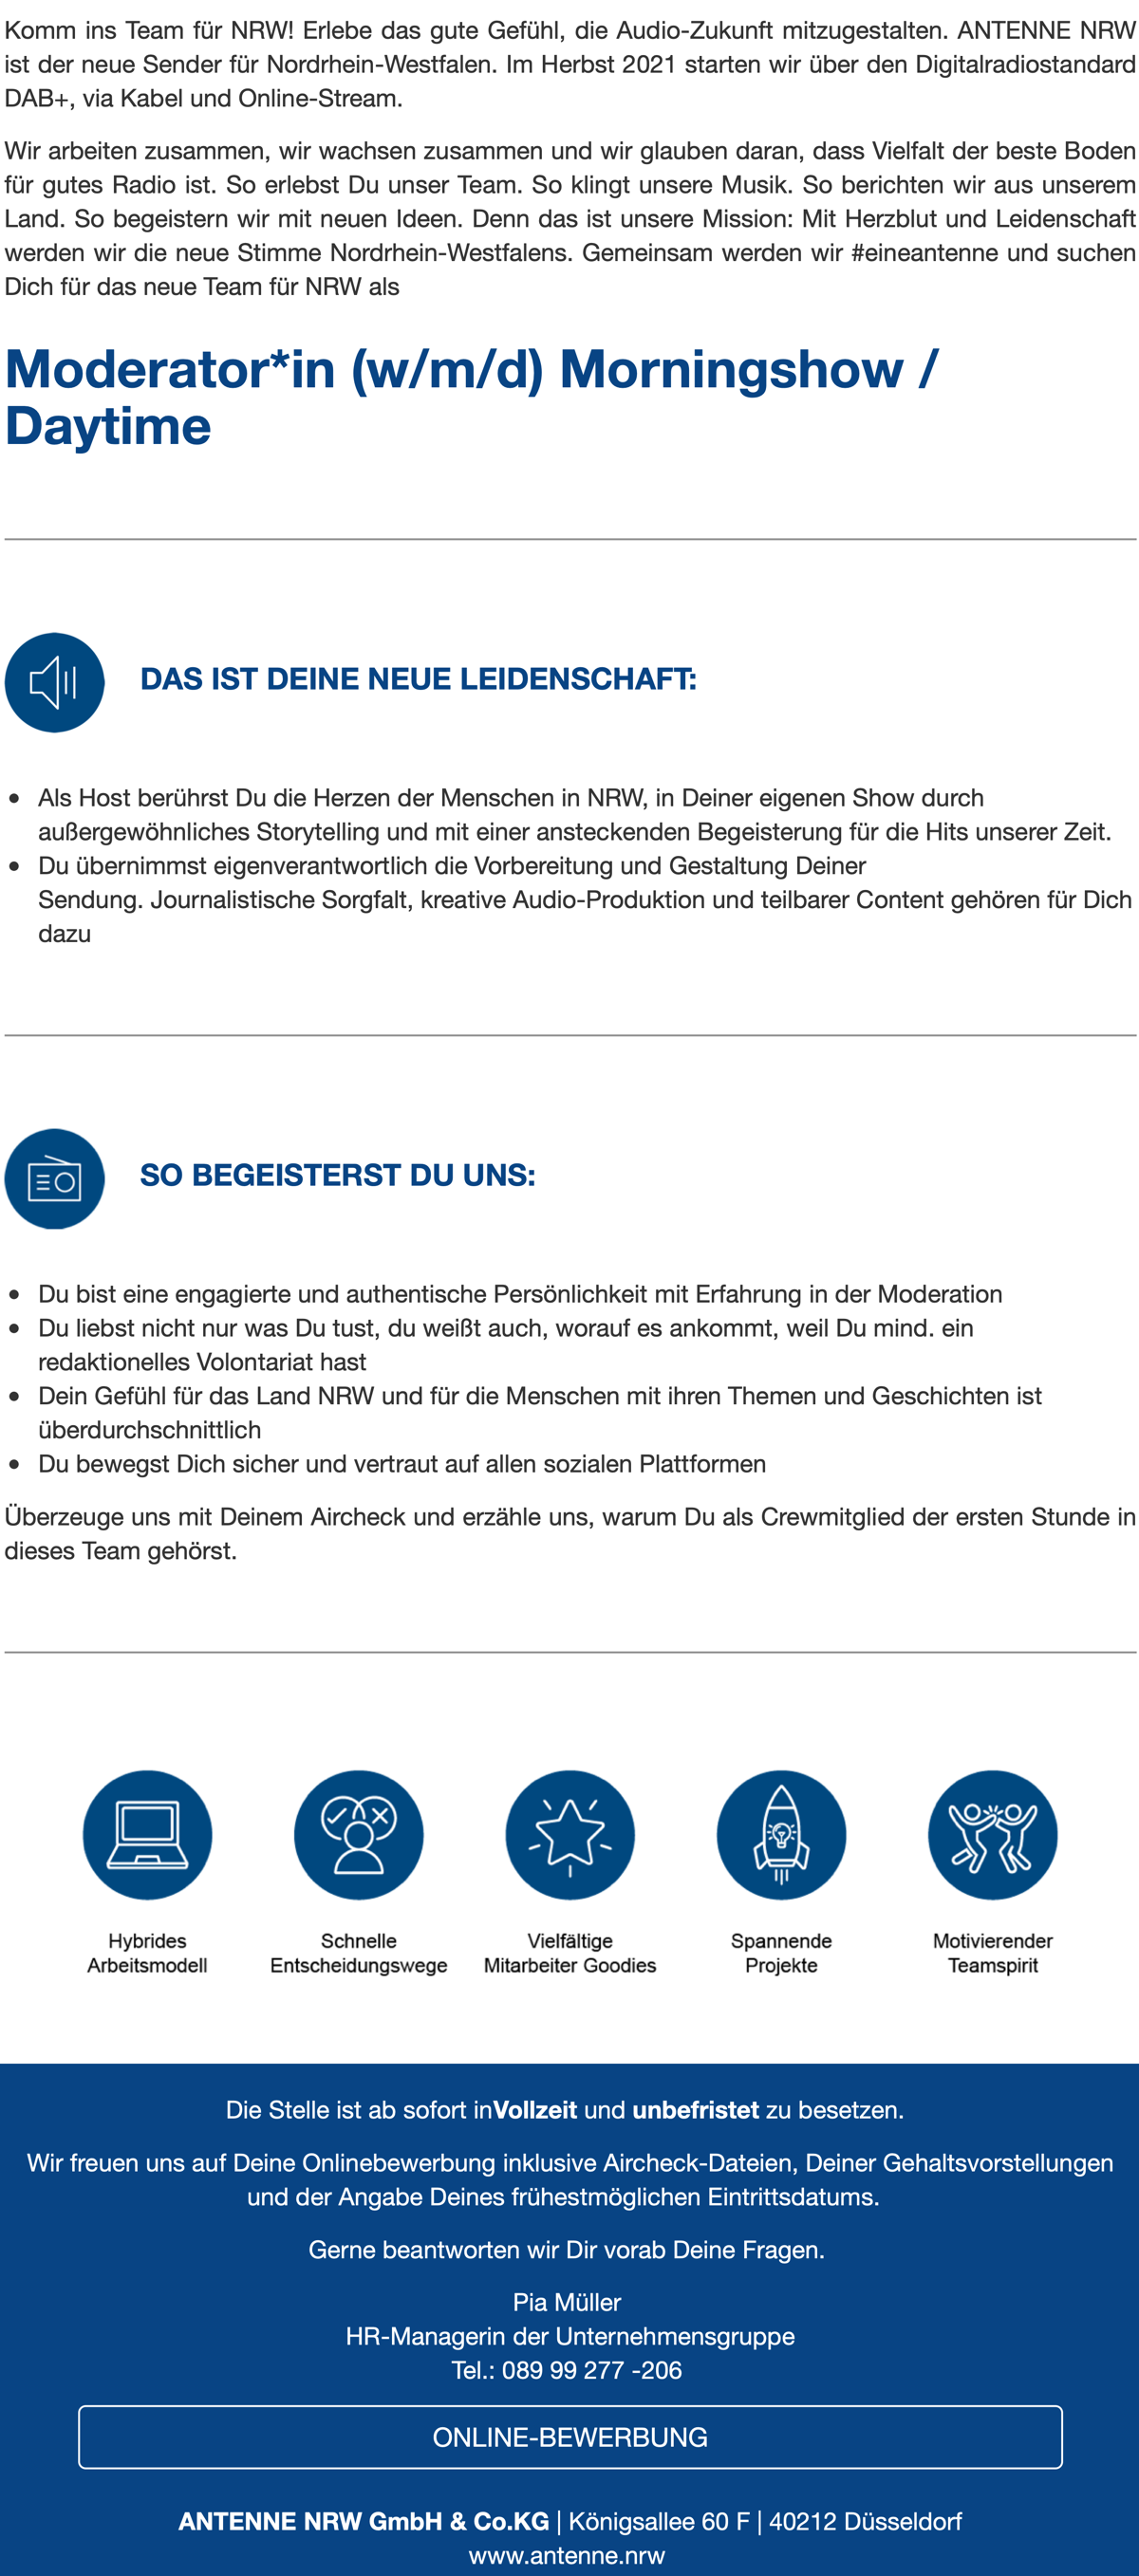 ANTENNE NRW sucht Moderator*in (w/m/d) Morningshow / Daytime